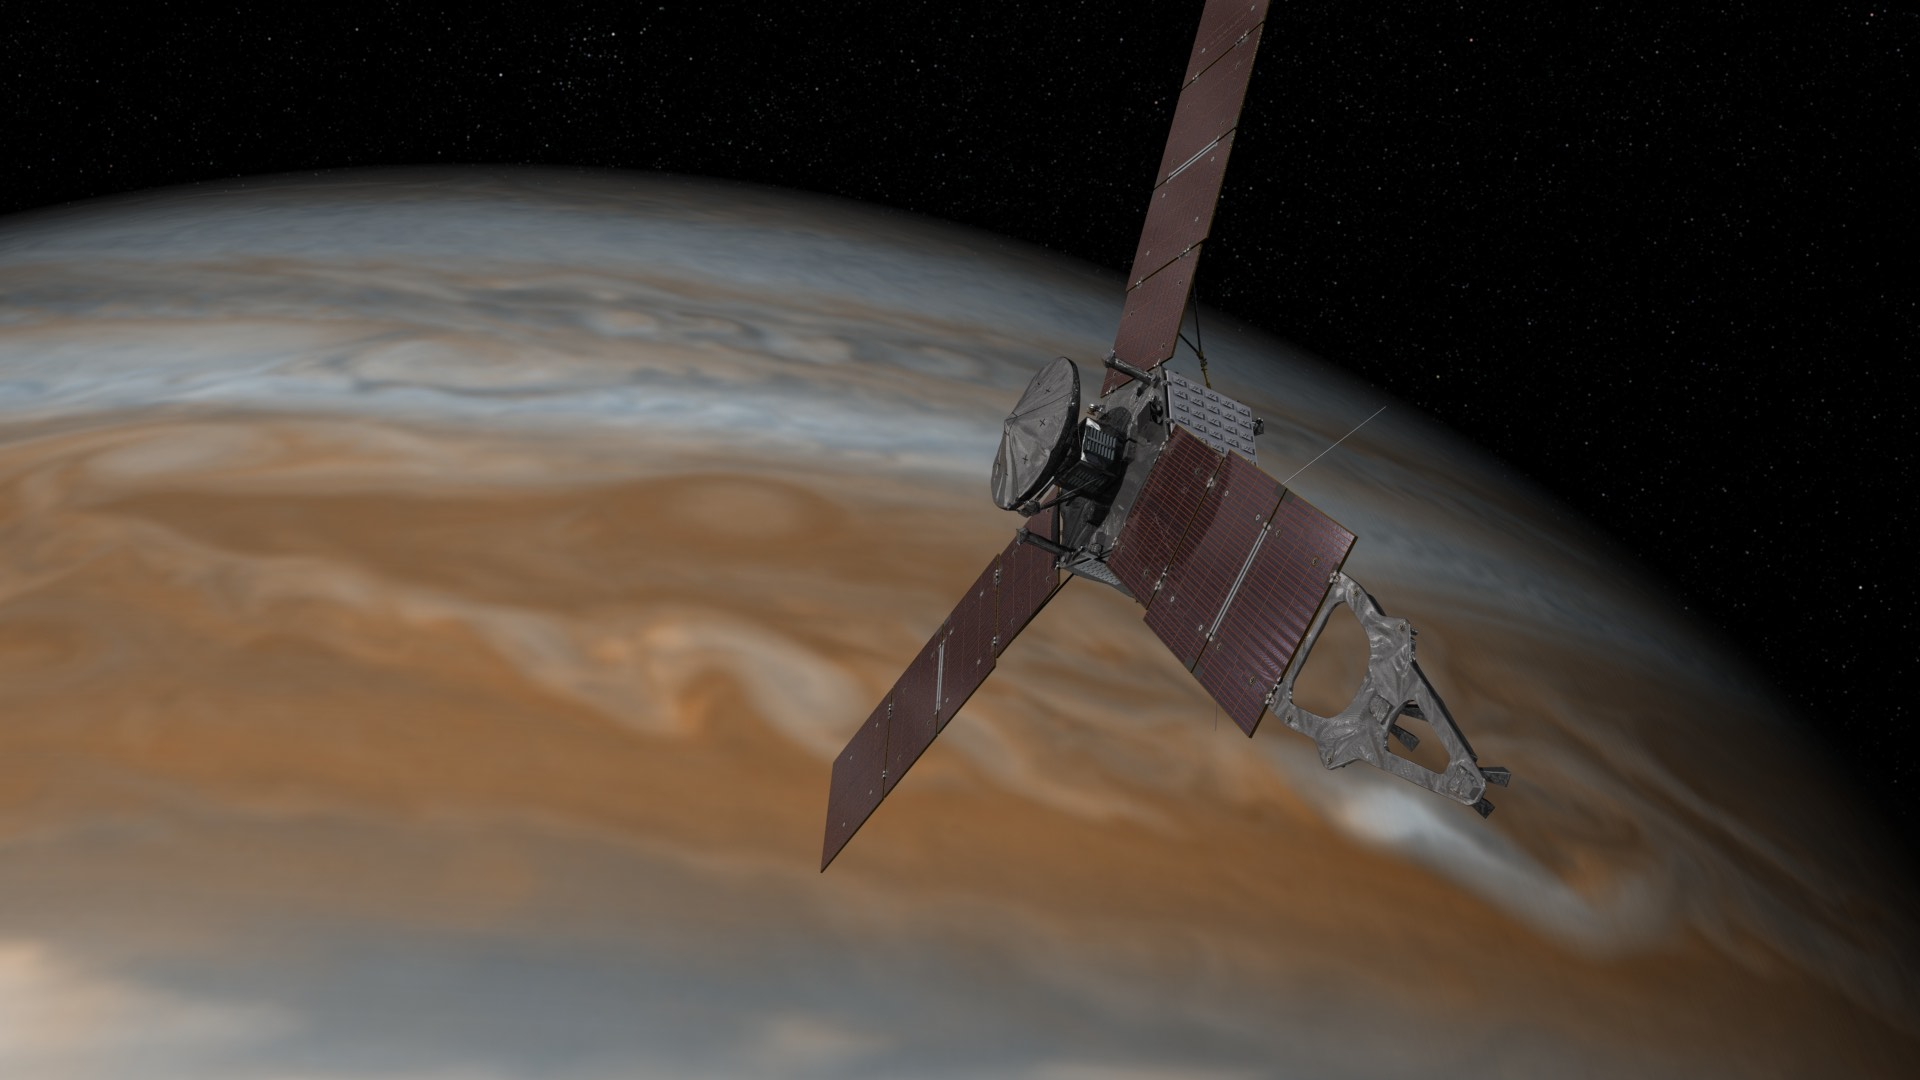 Artist's rendering shows NASA's Juno spacecraft making one of its close passes over Jupiter. NASA/JPL-Caltech